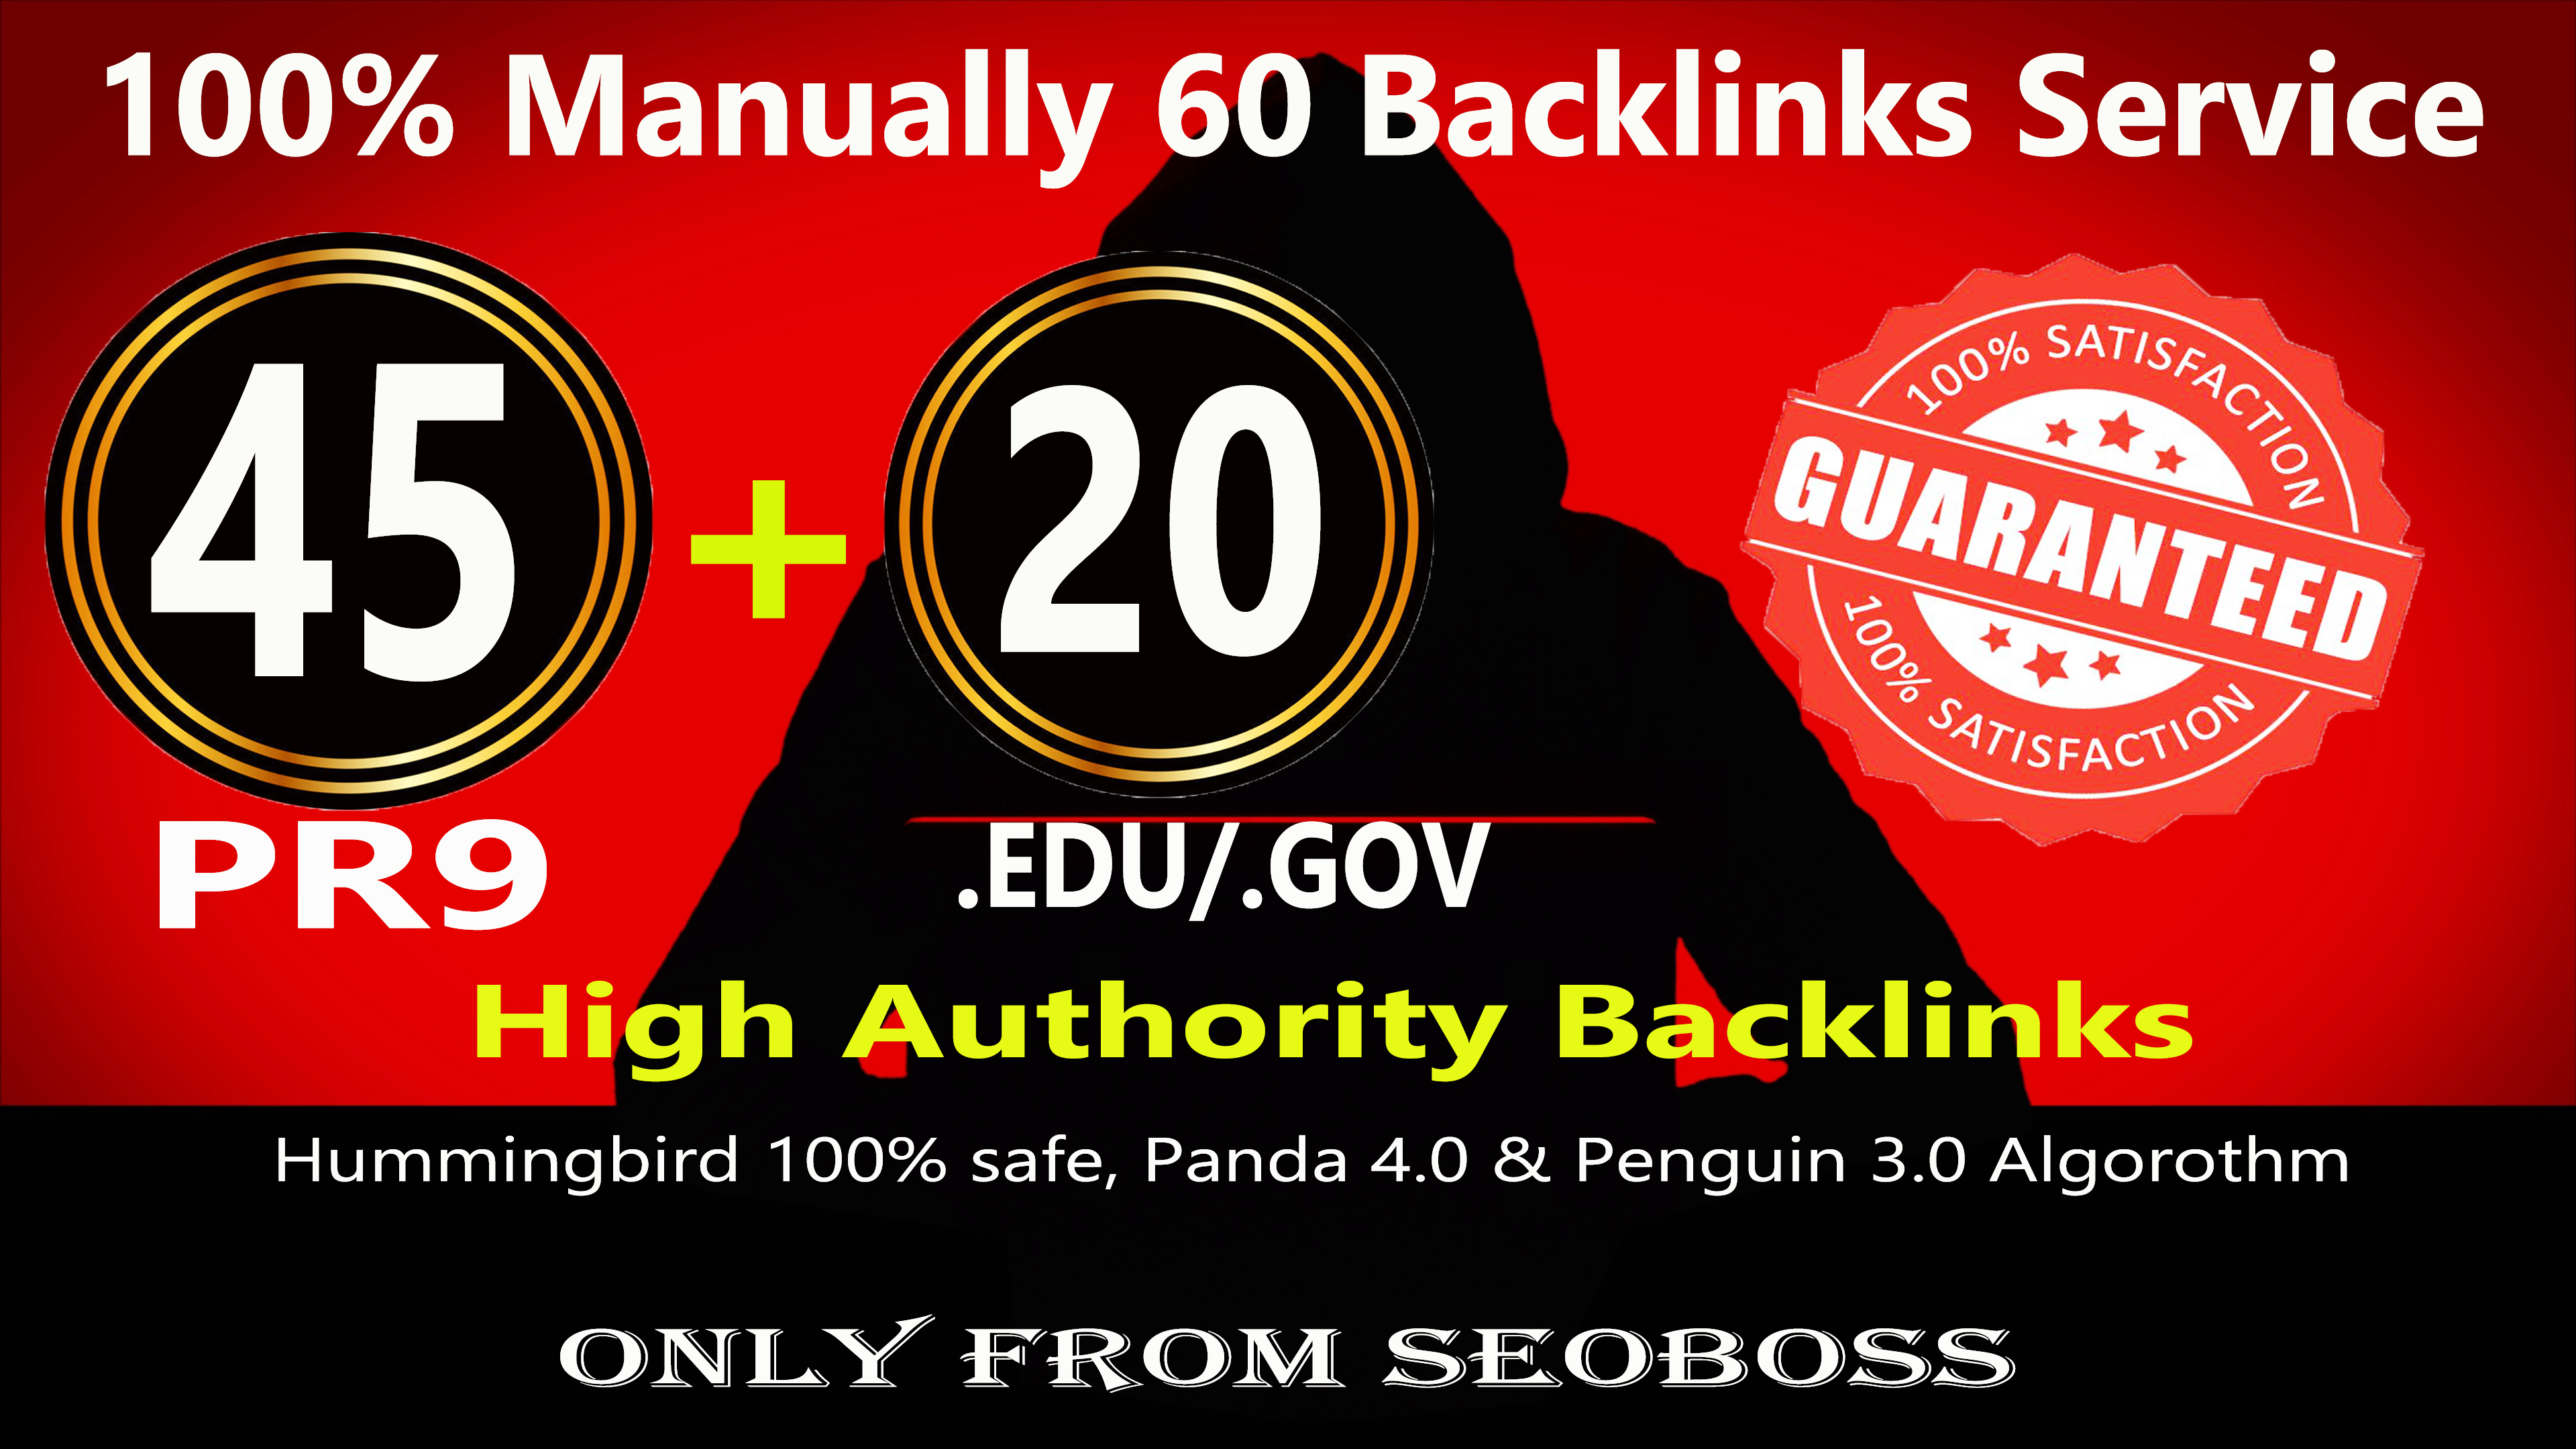 Latest and Top 70 PR10 to PR7 SEO Backlinks DA80+ With. EDU. Gov Links Boost Your Google Rank